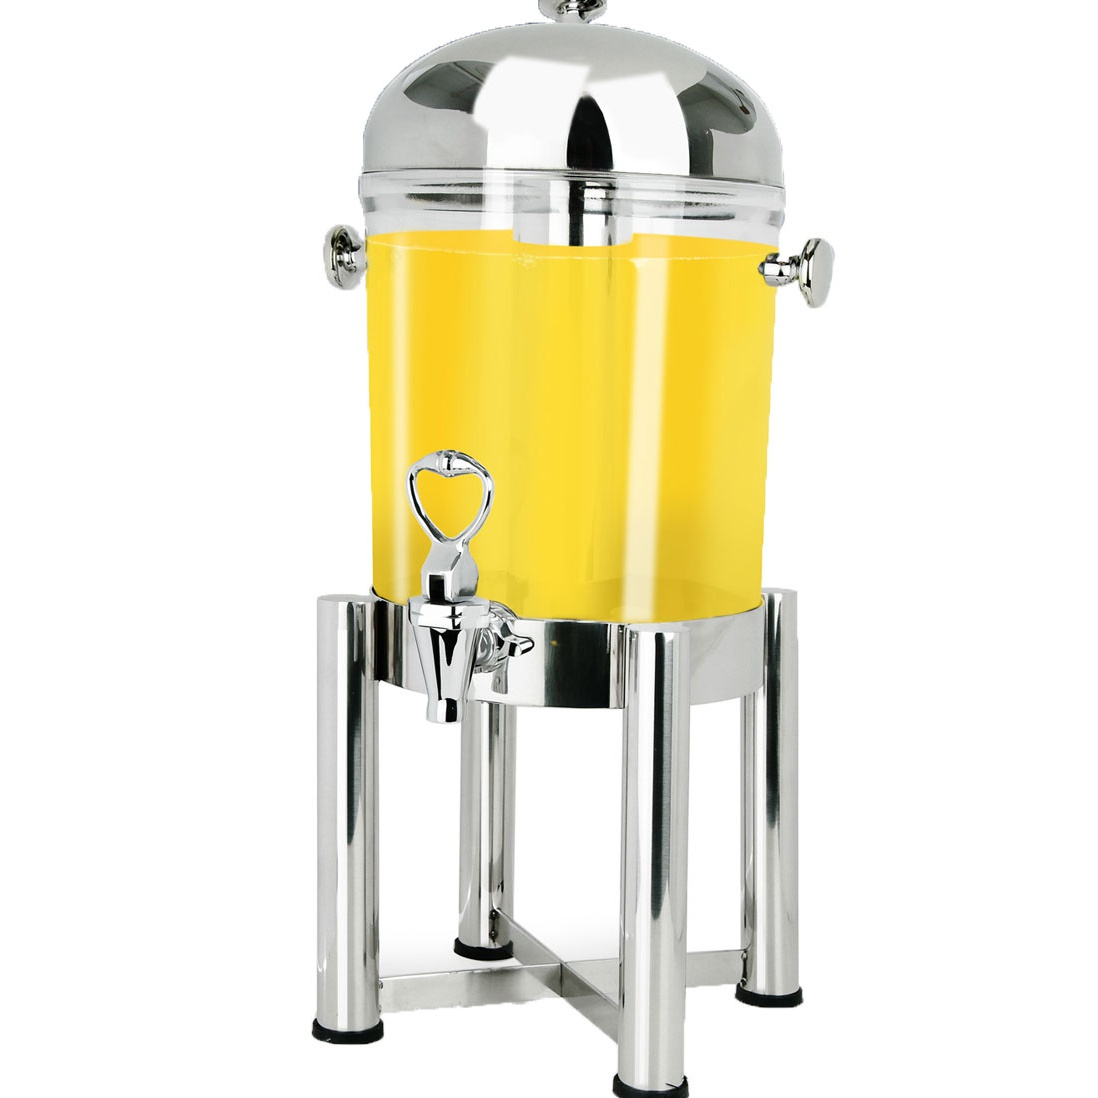 Beverage Dispenser, stainless acrylic, 7.5L / 32 Cups